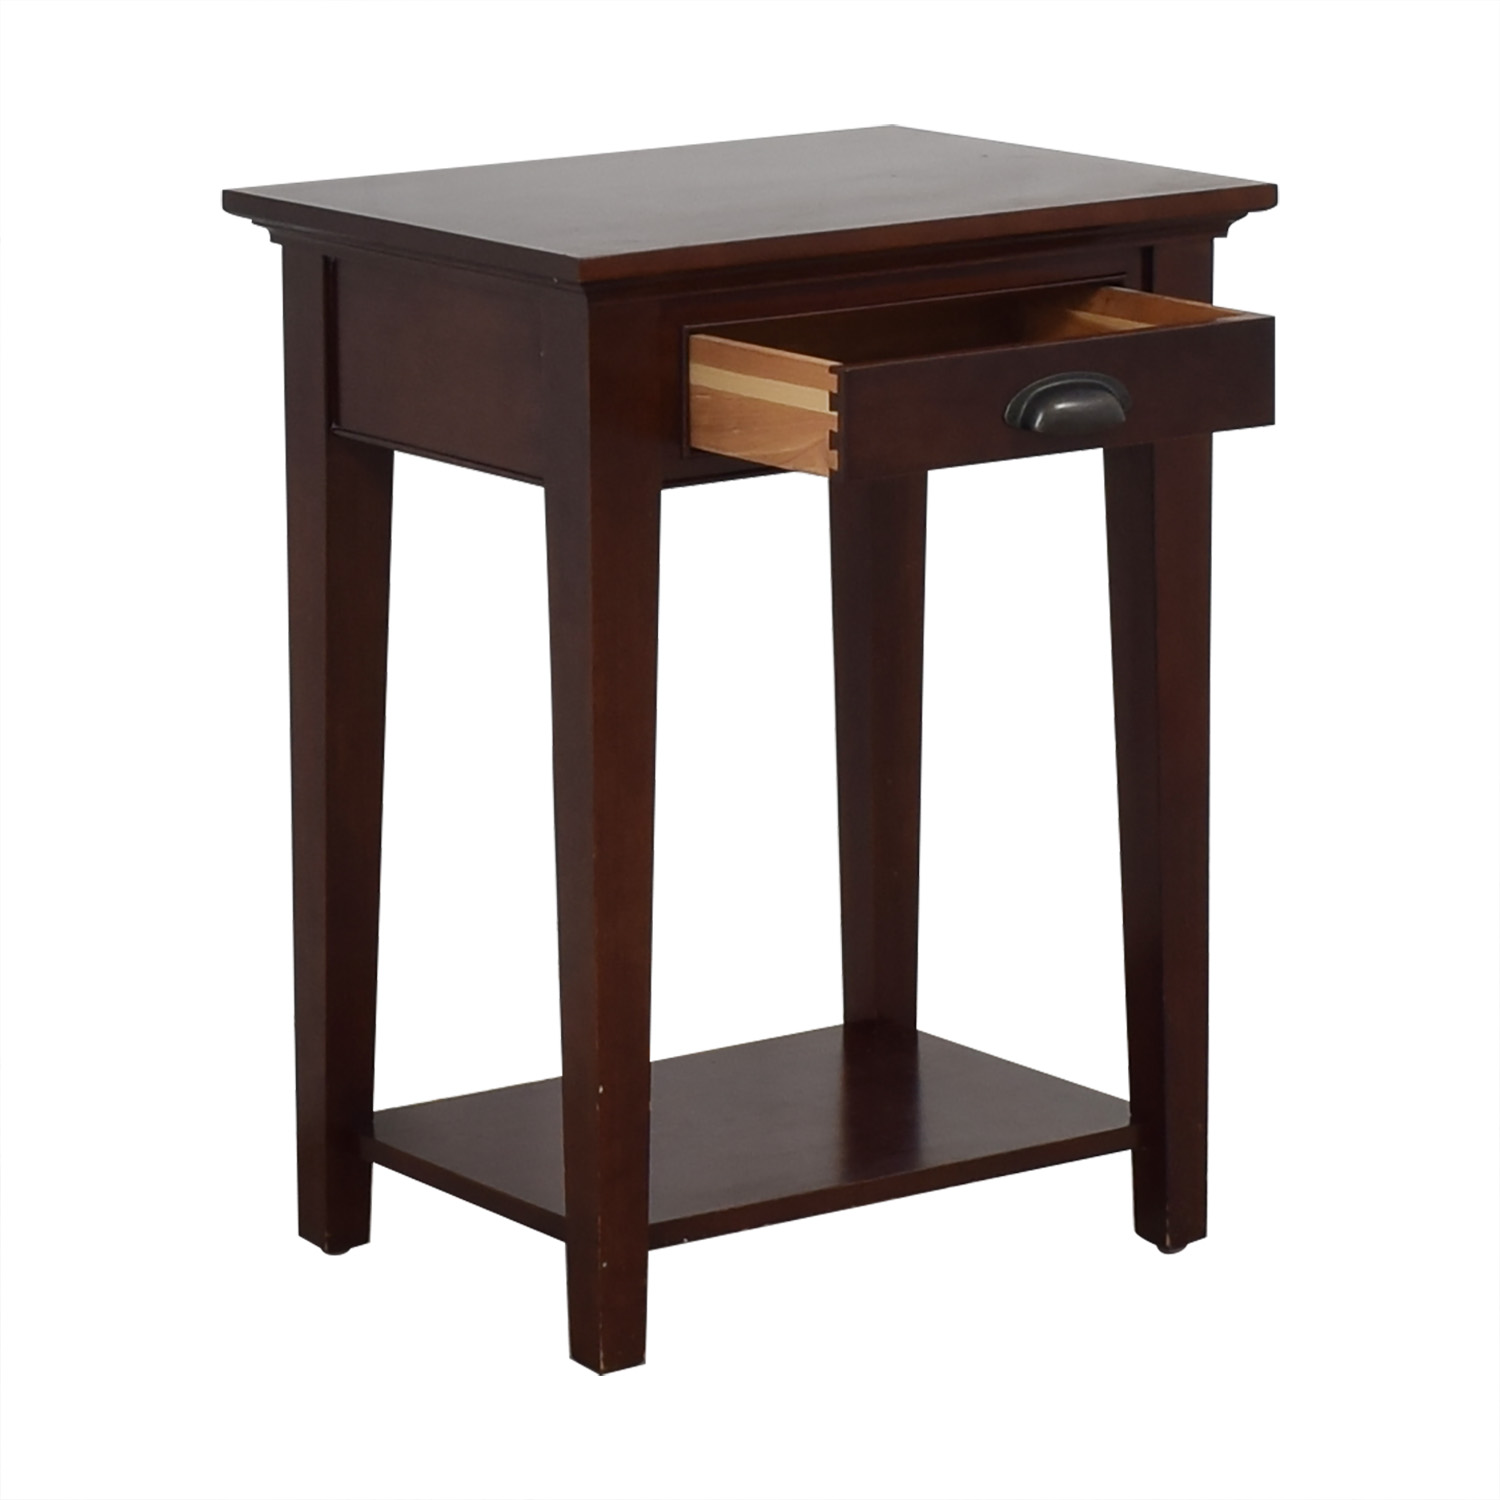 Restoration Hardware Restoration Hardware Marston 1-Drawer Nightstand discount